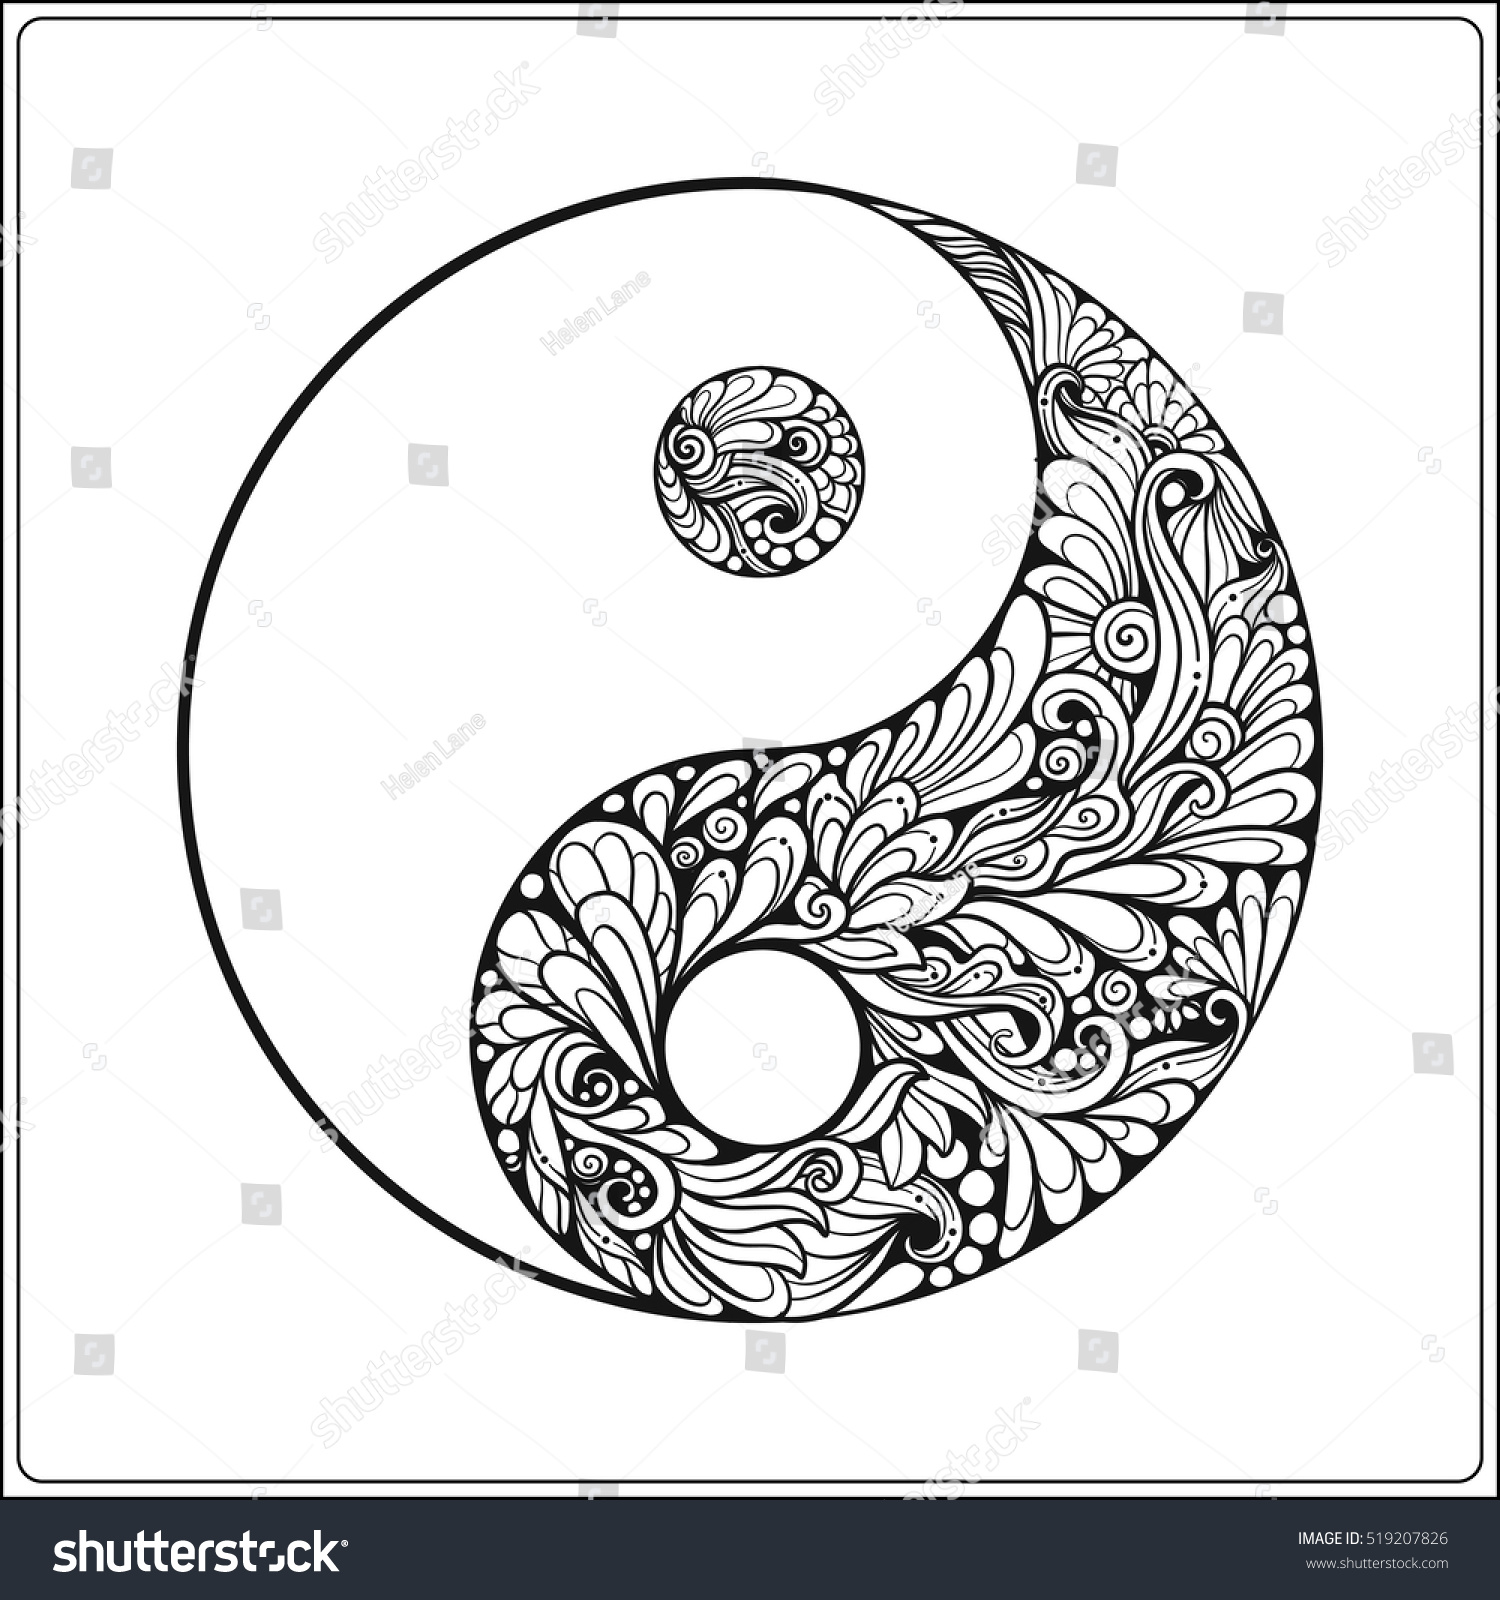 Symbol Of Yin And Yang In Gold On Black Background Coloring Book